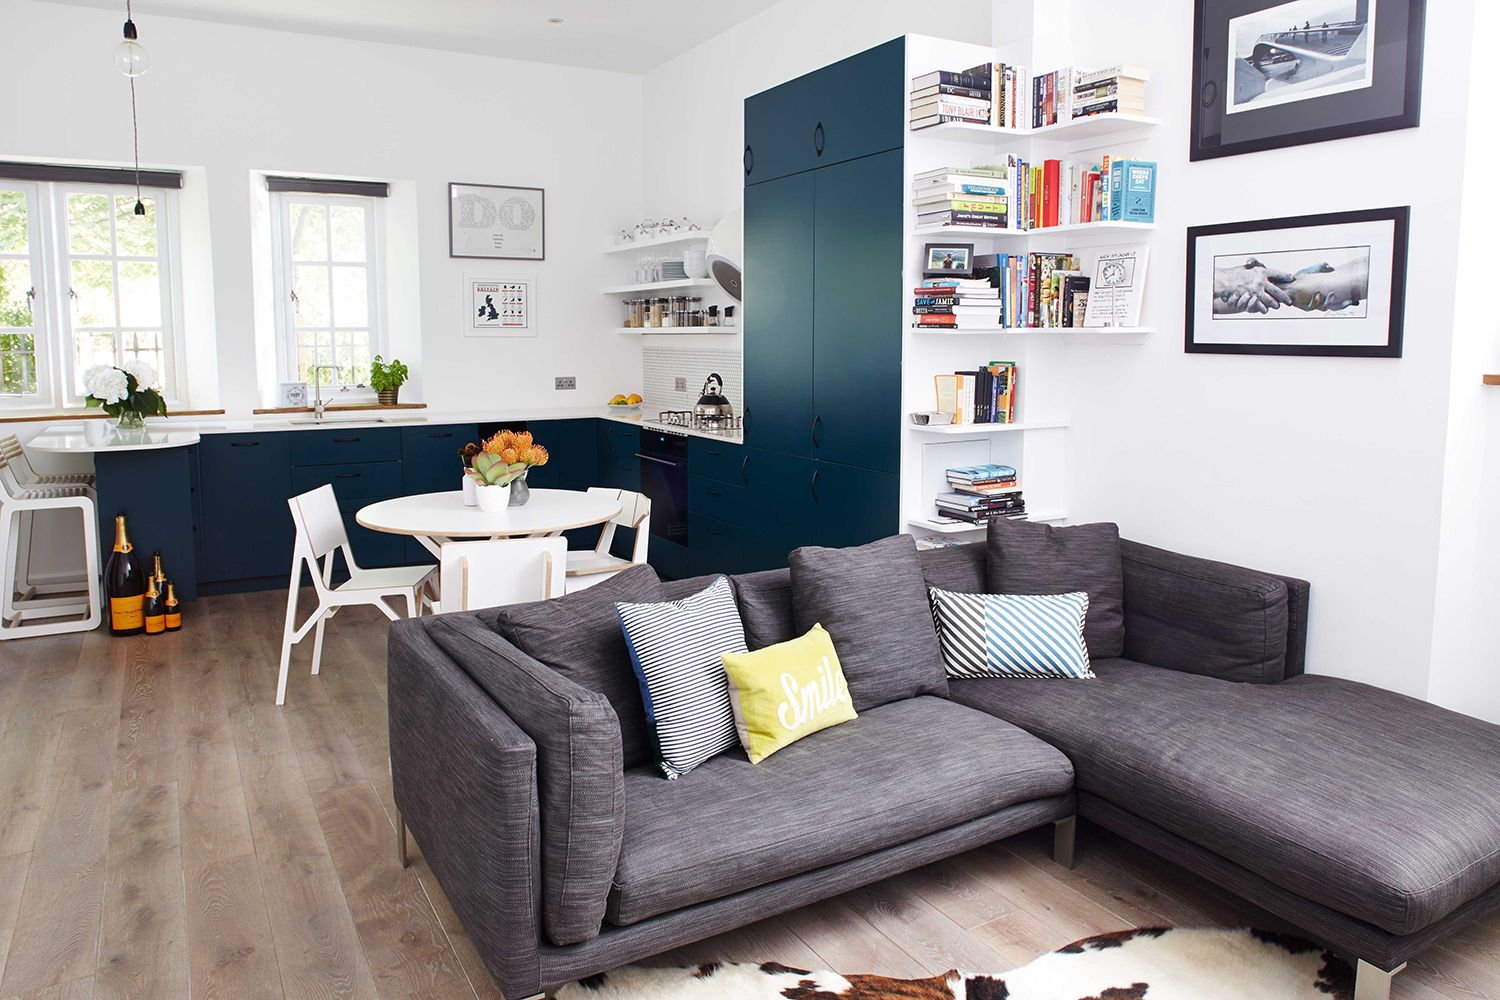 Cassidy_Hughes_Design_Sofa_Open_Plan_Kitchen_Living  Jo's Awesome Interior Design Living Room Small Flat Decorating Inspiration